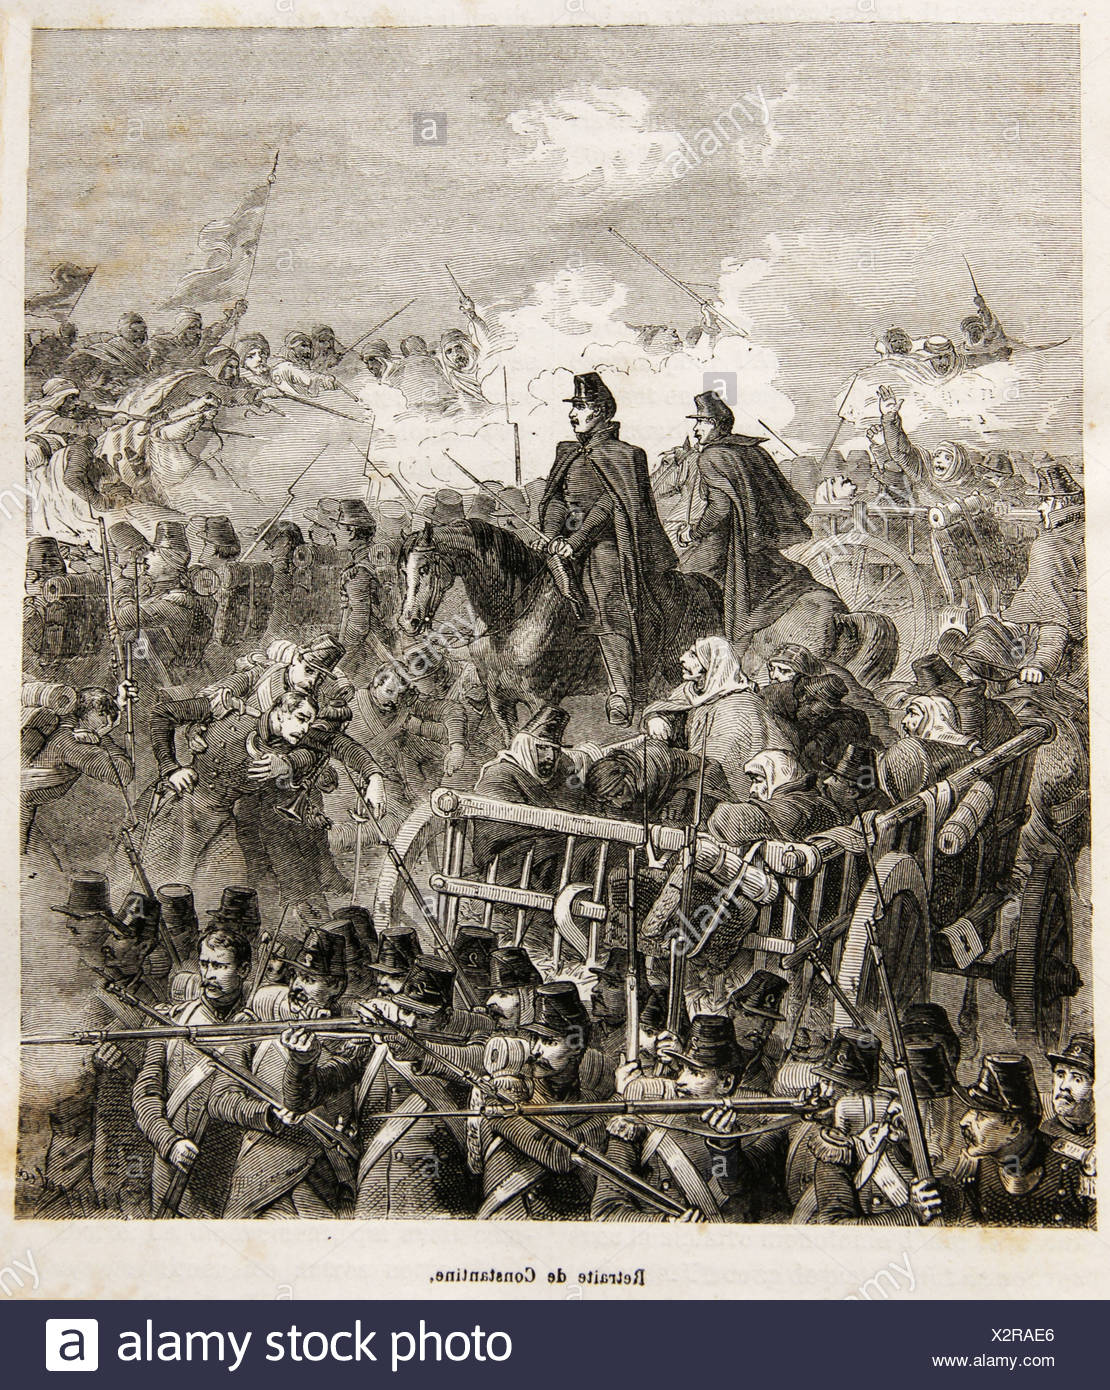 ´Retraite de Constantine´, French troops during the colonisation of Algiers (19th century) - Stock Image